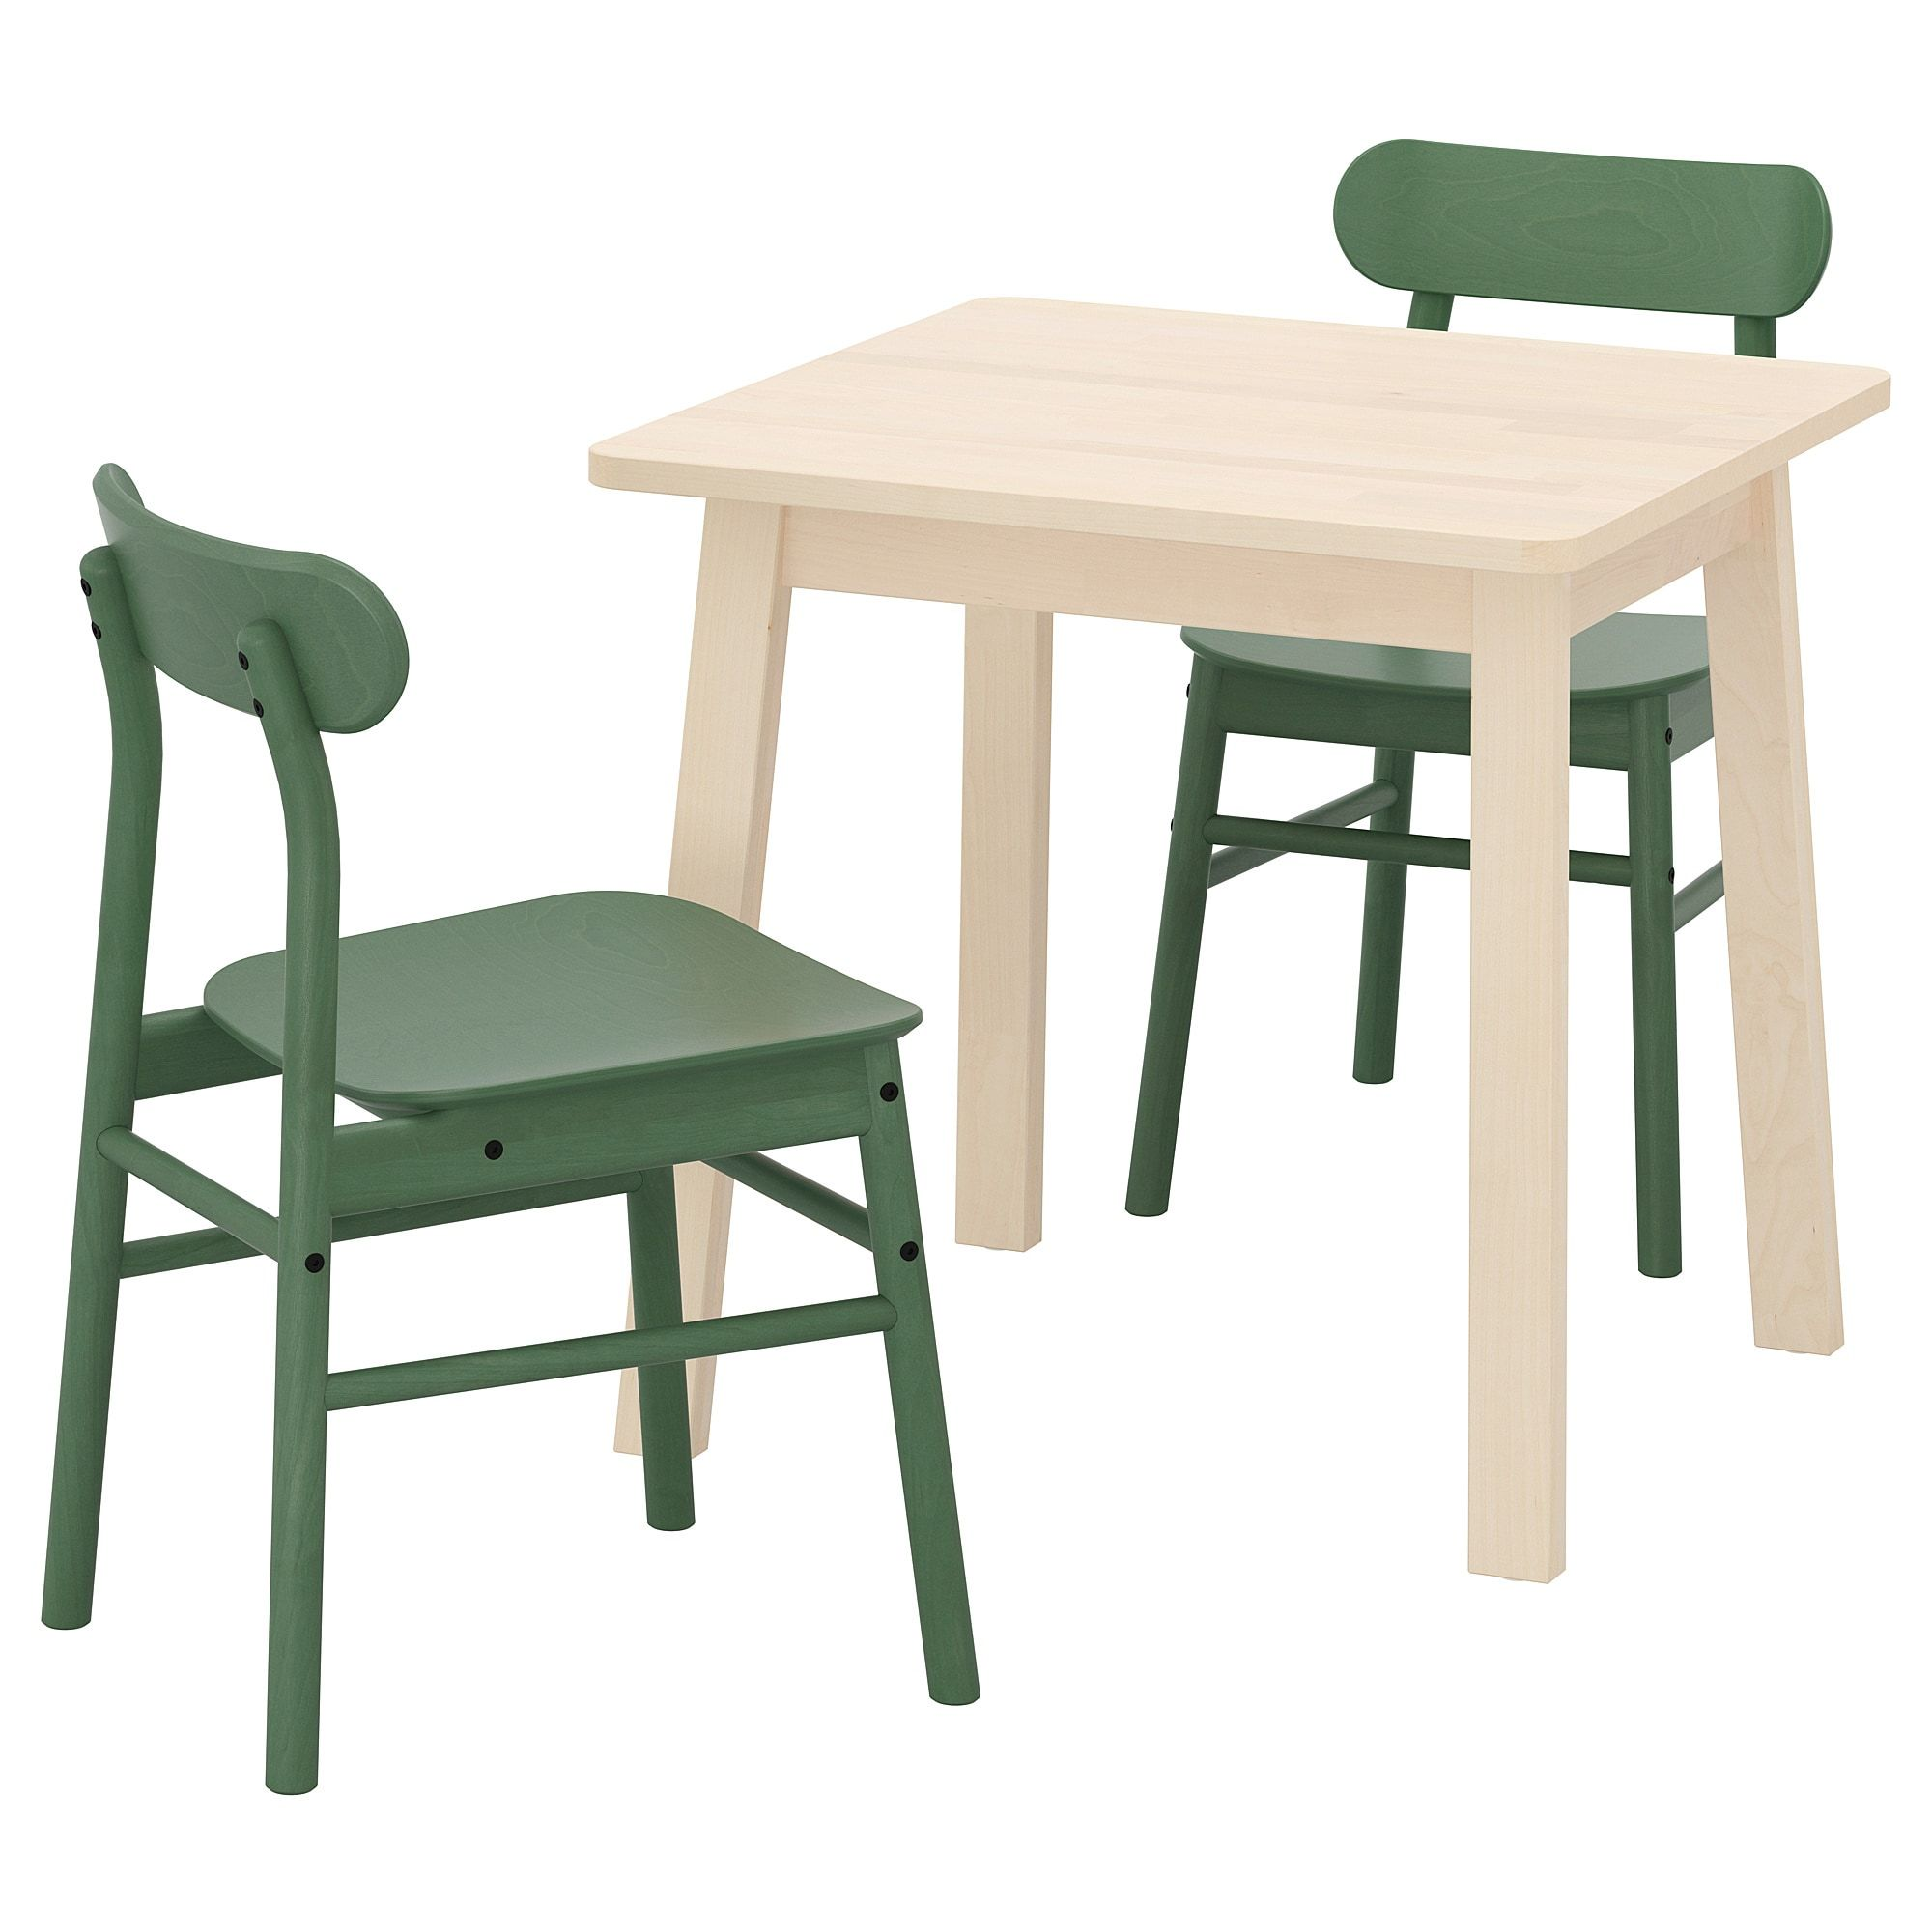 Norraker Ronninge Table And 2 Chairs Birch Green Ikea Chair Small Dining Table Set 2 Seater Dining Table